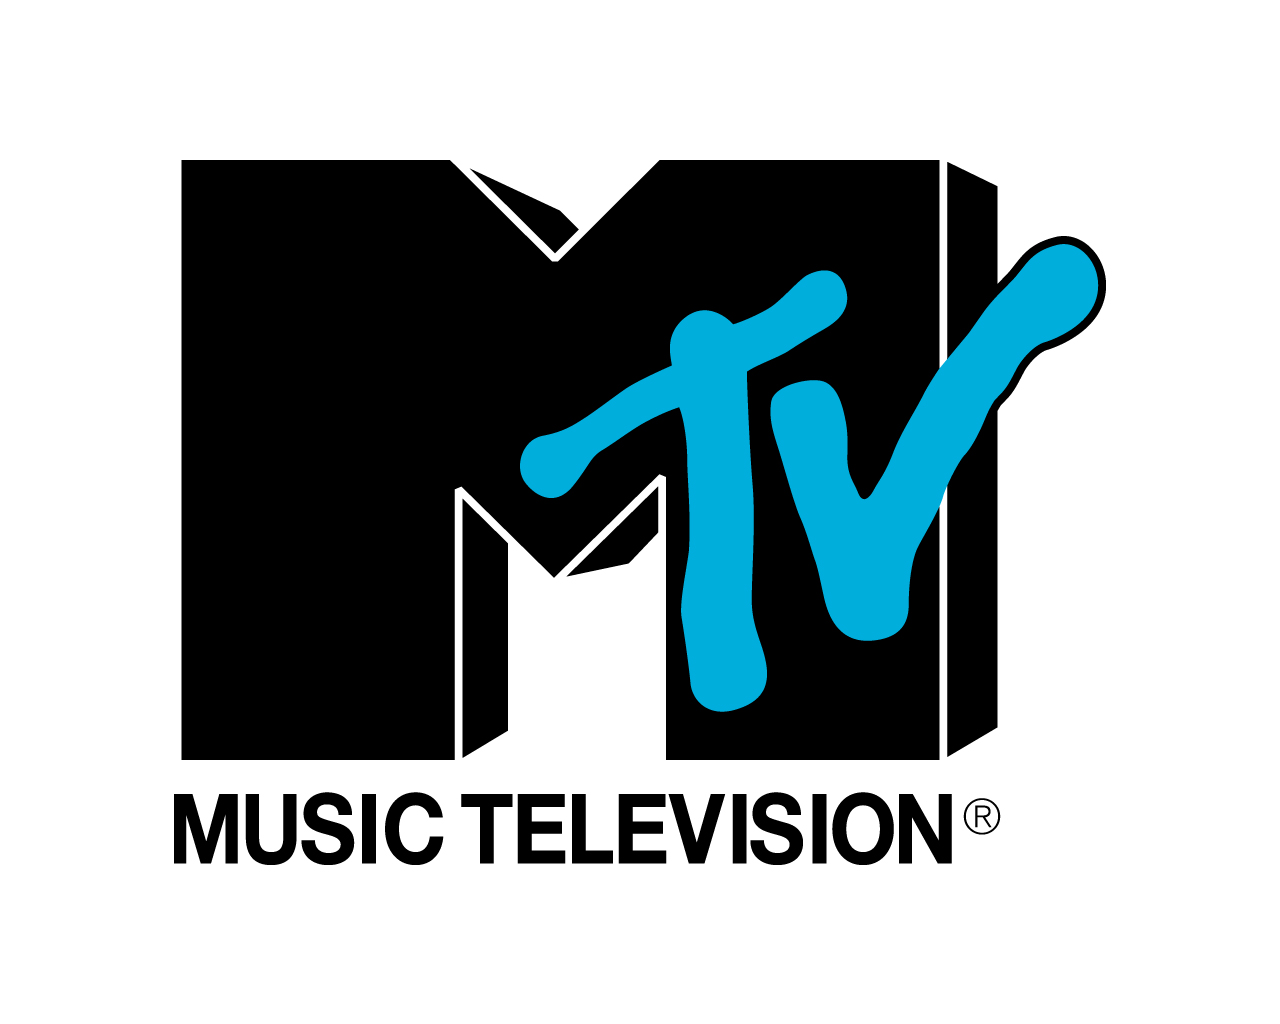 Music Television Logo Wallpaper